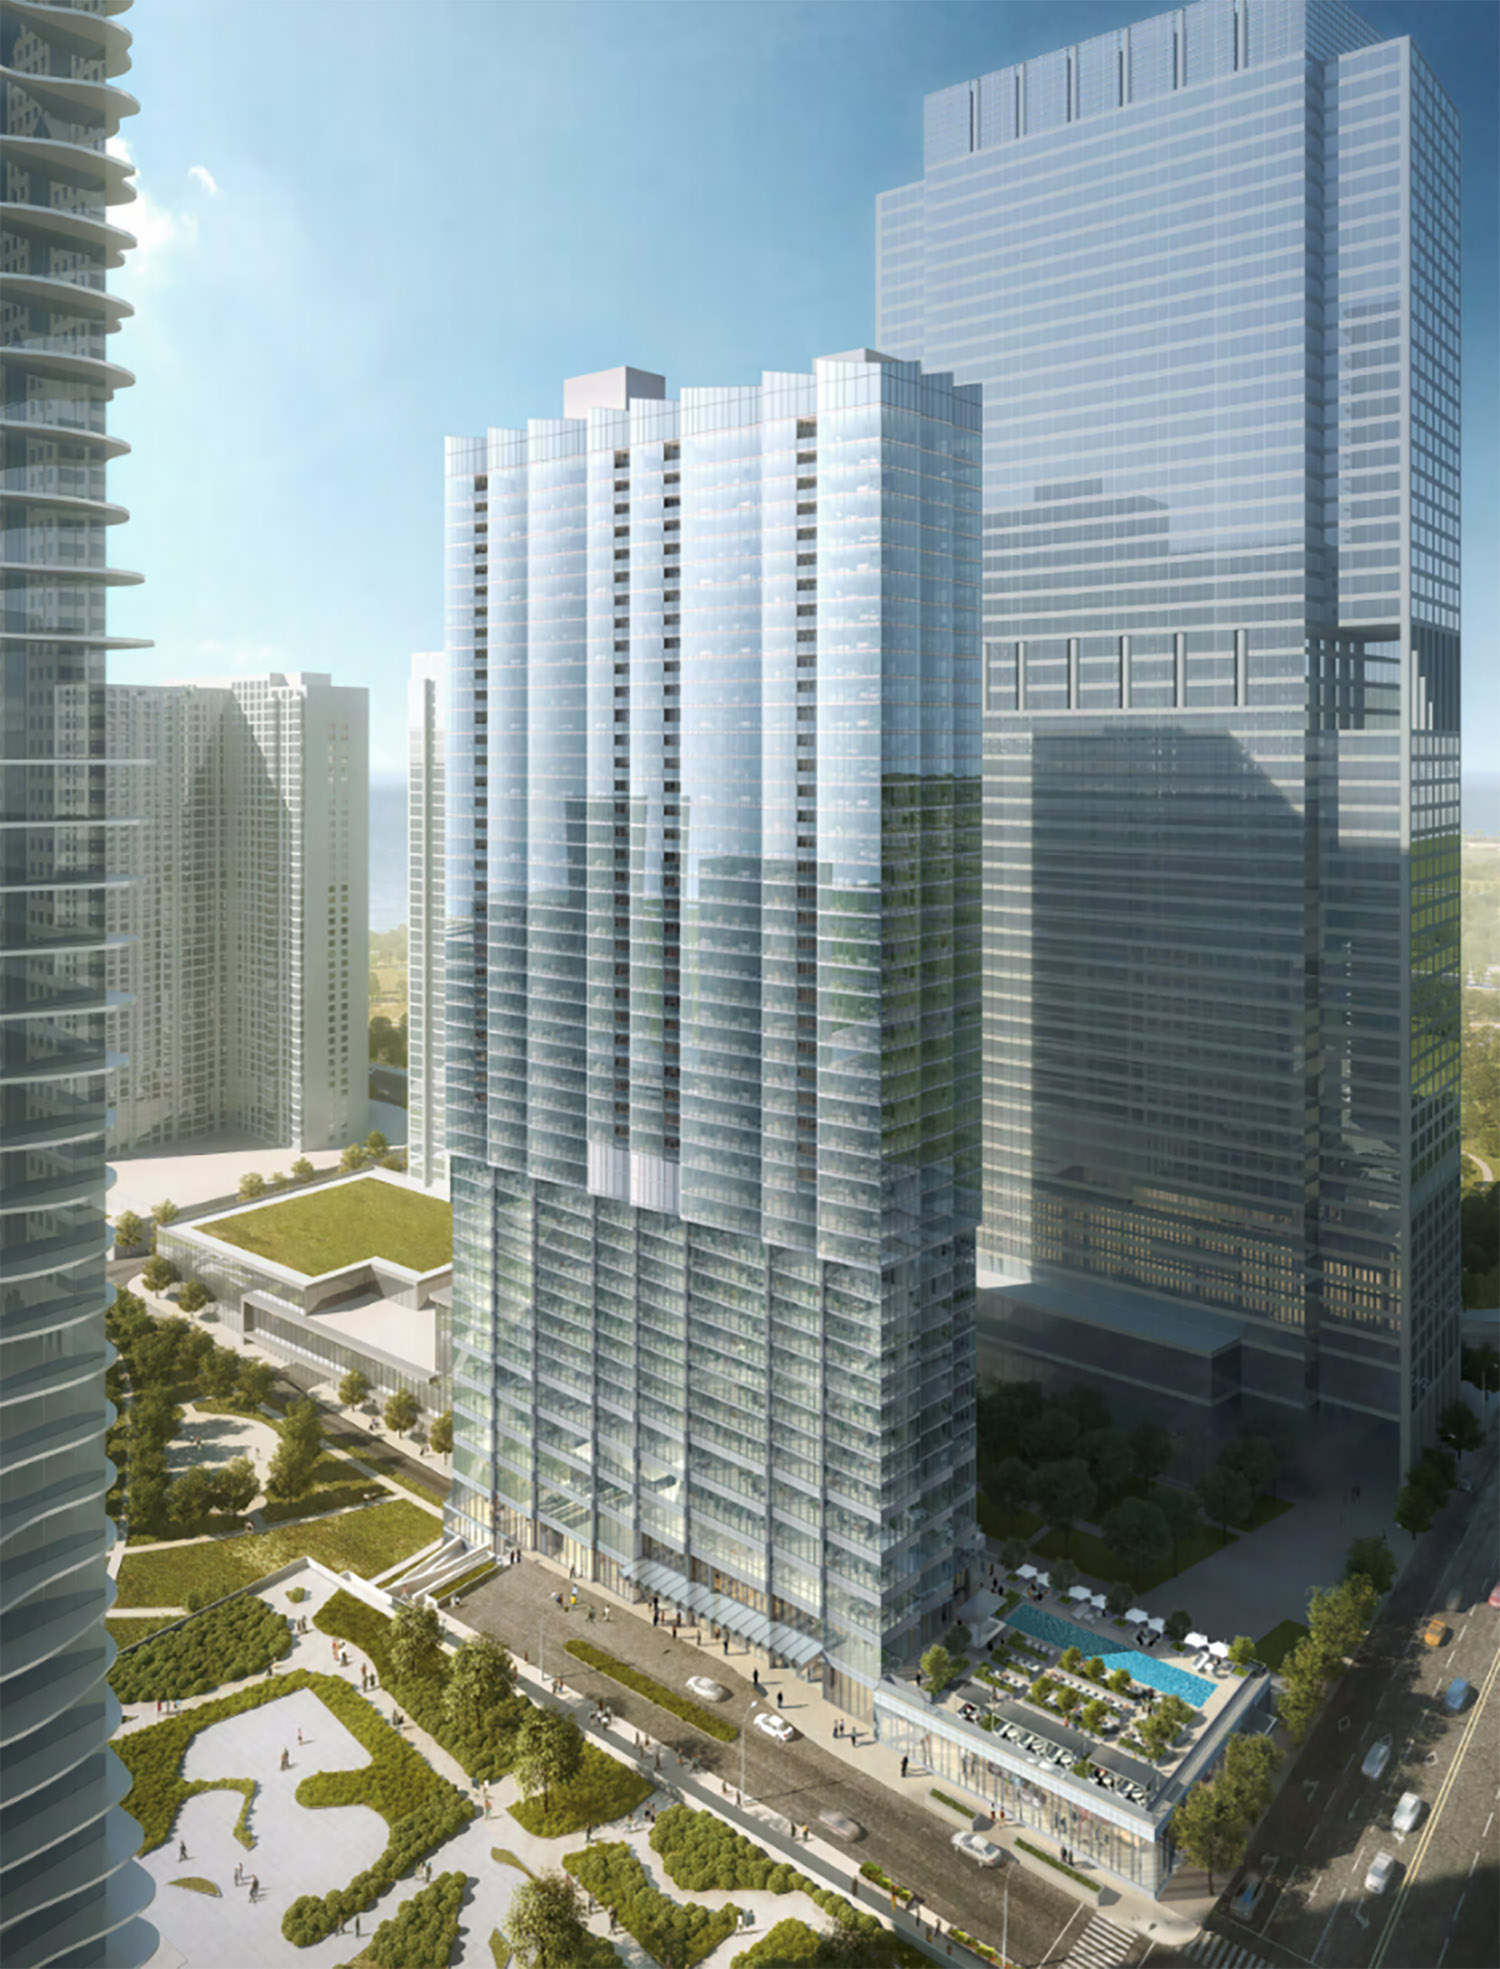 Northwest View of Revised Design for Parcel O Tower. Rendering by bKL Architecture